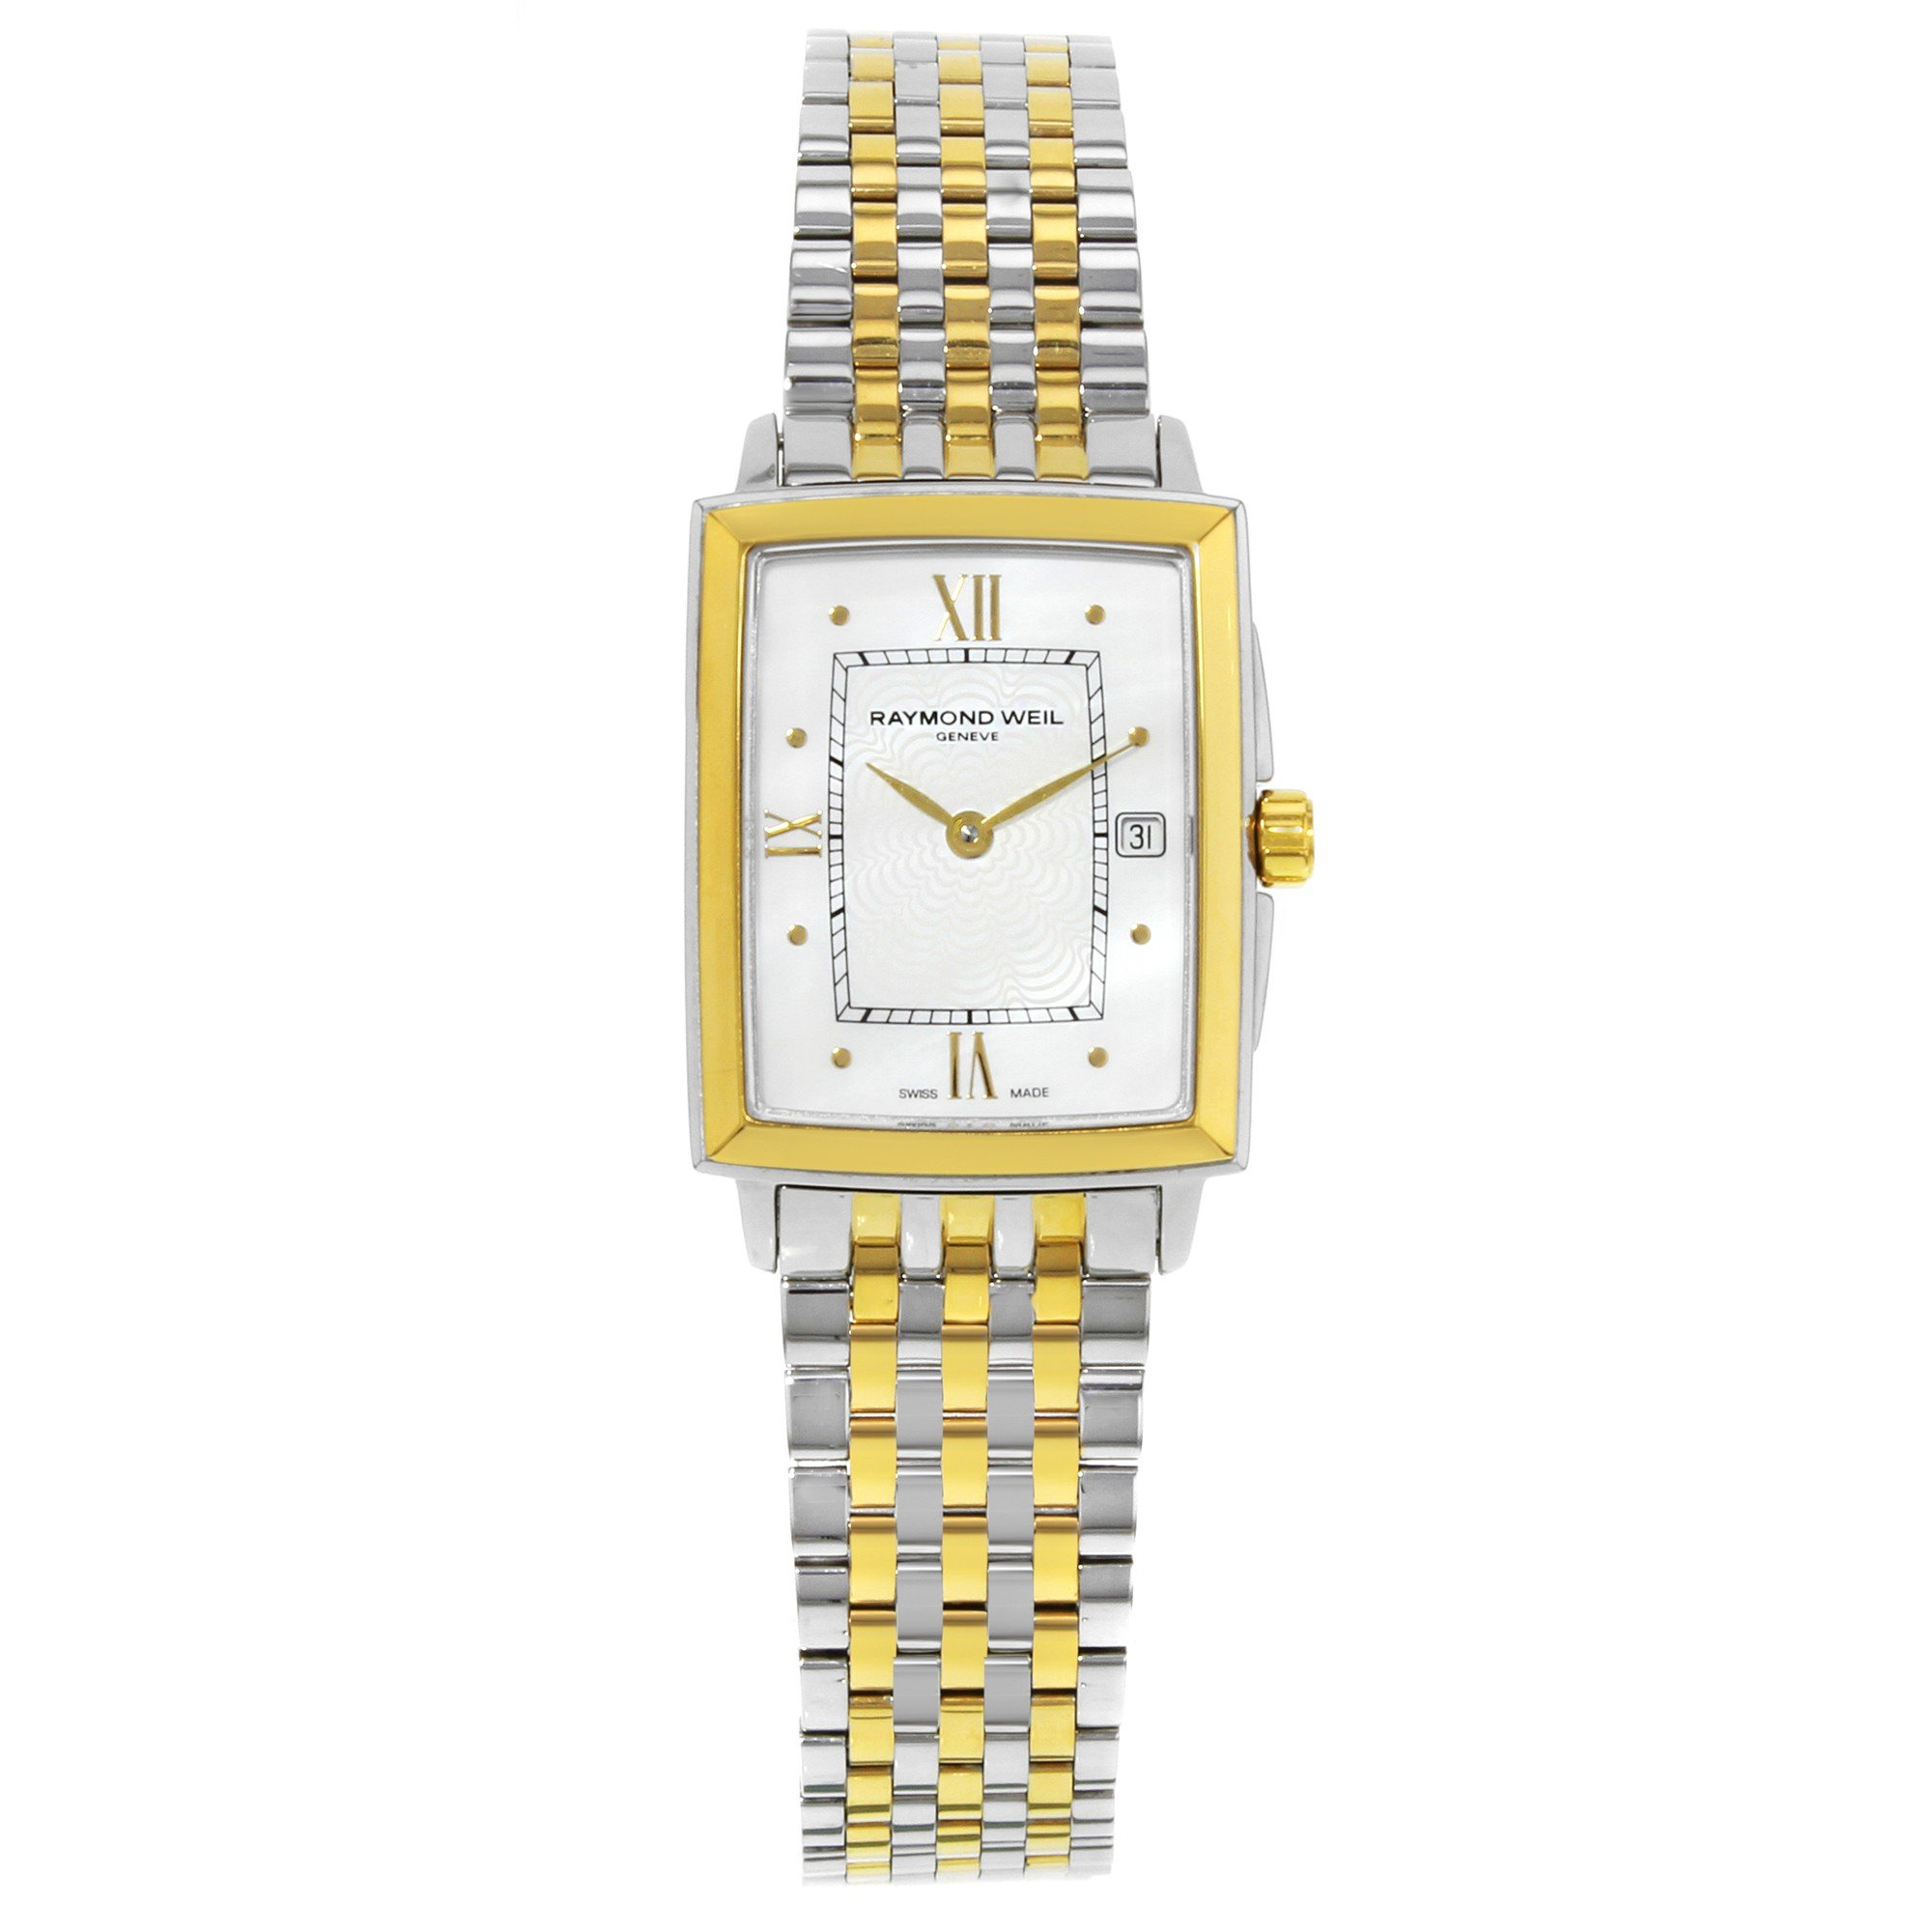 Raymond Weil Tradition Quartz Female Watch 5956-STP-00915 (Certified Pre-Owned) by RAYMOND WEIL